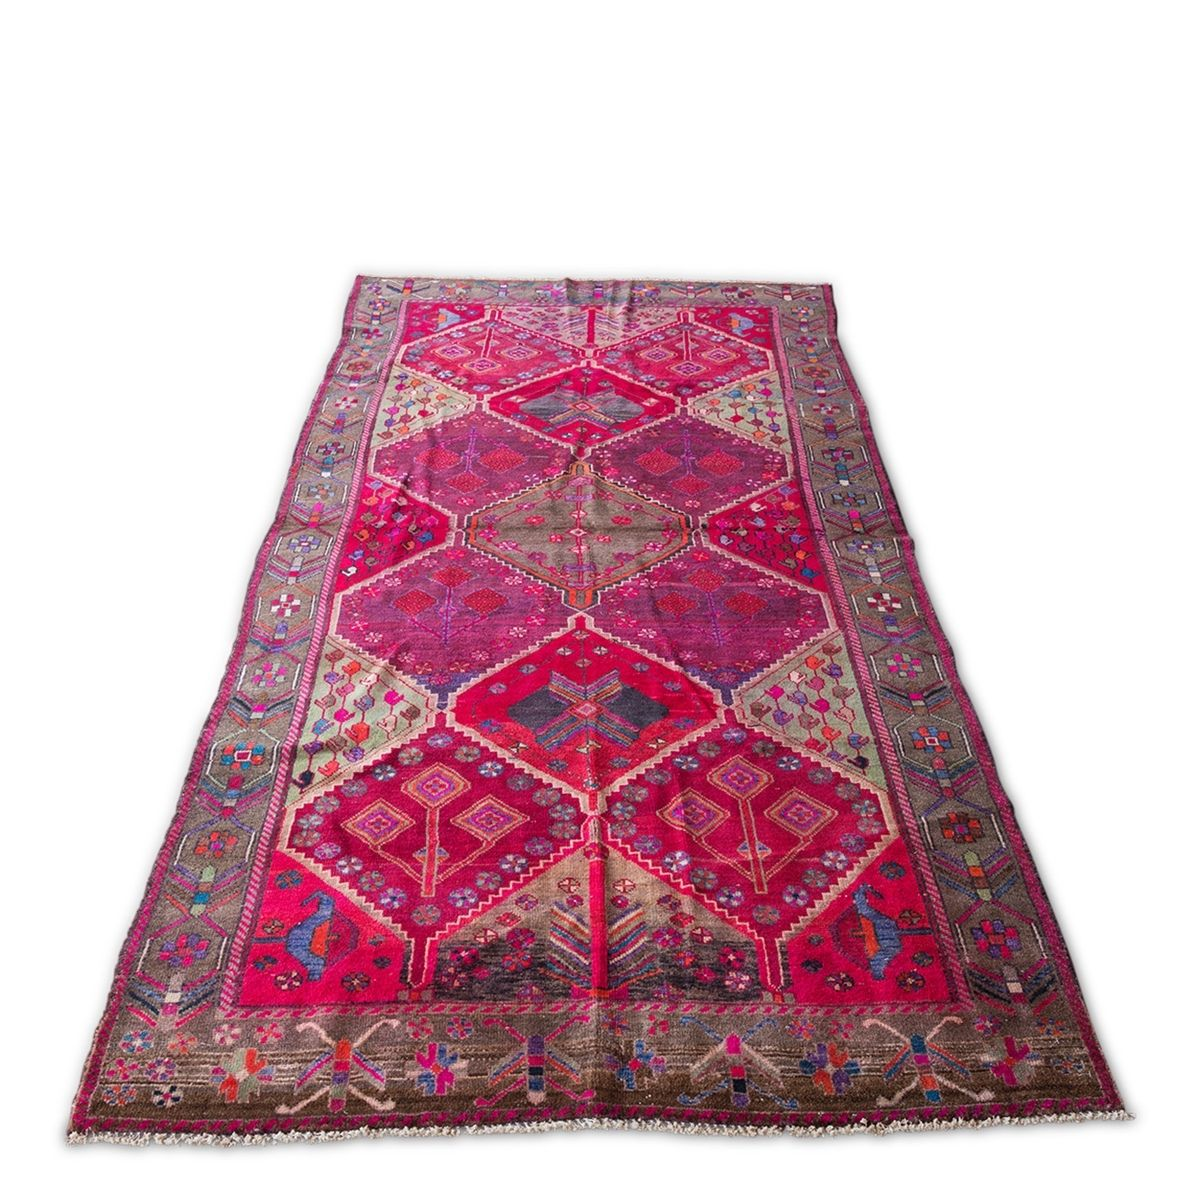 Furbish Studio - Monikah Vintage Rug angled full view